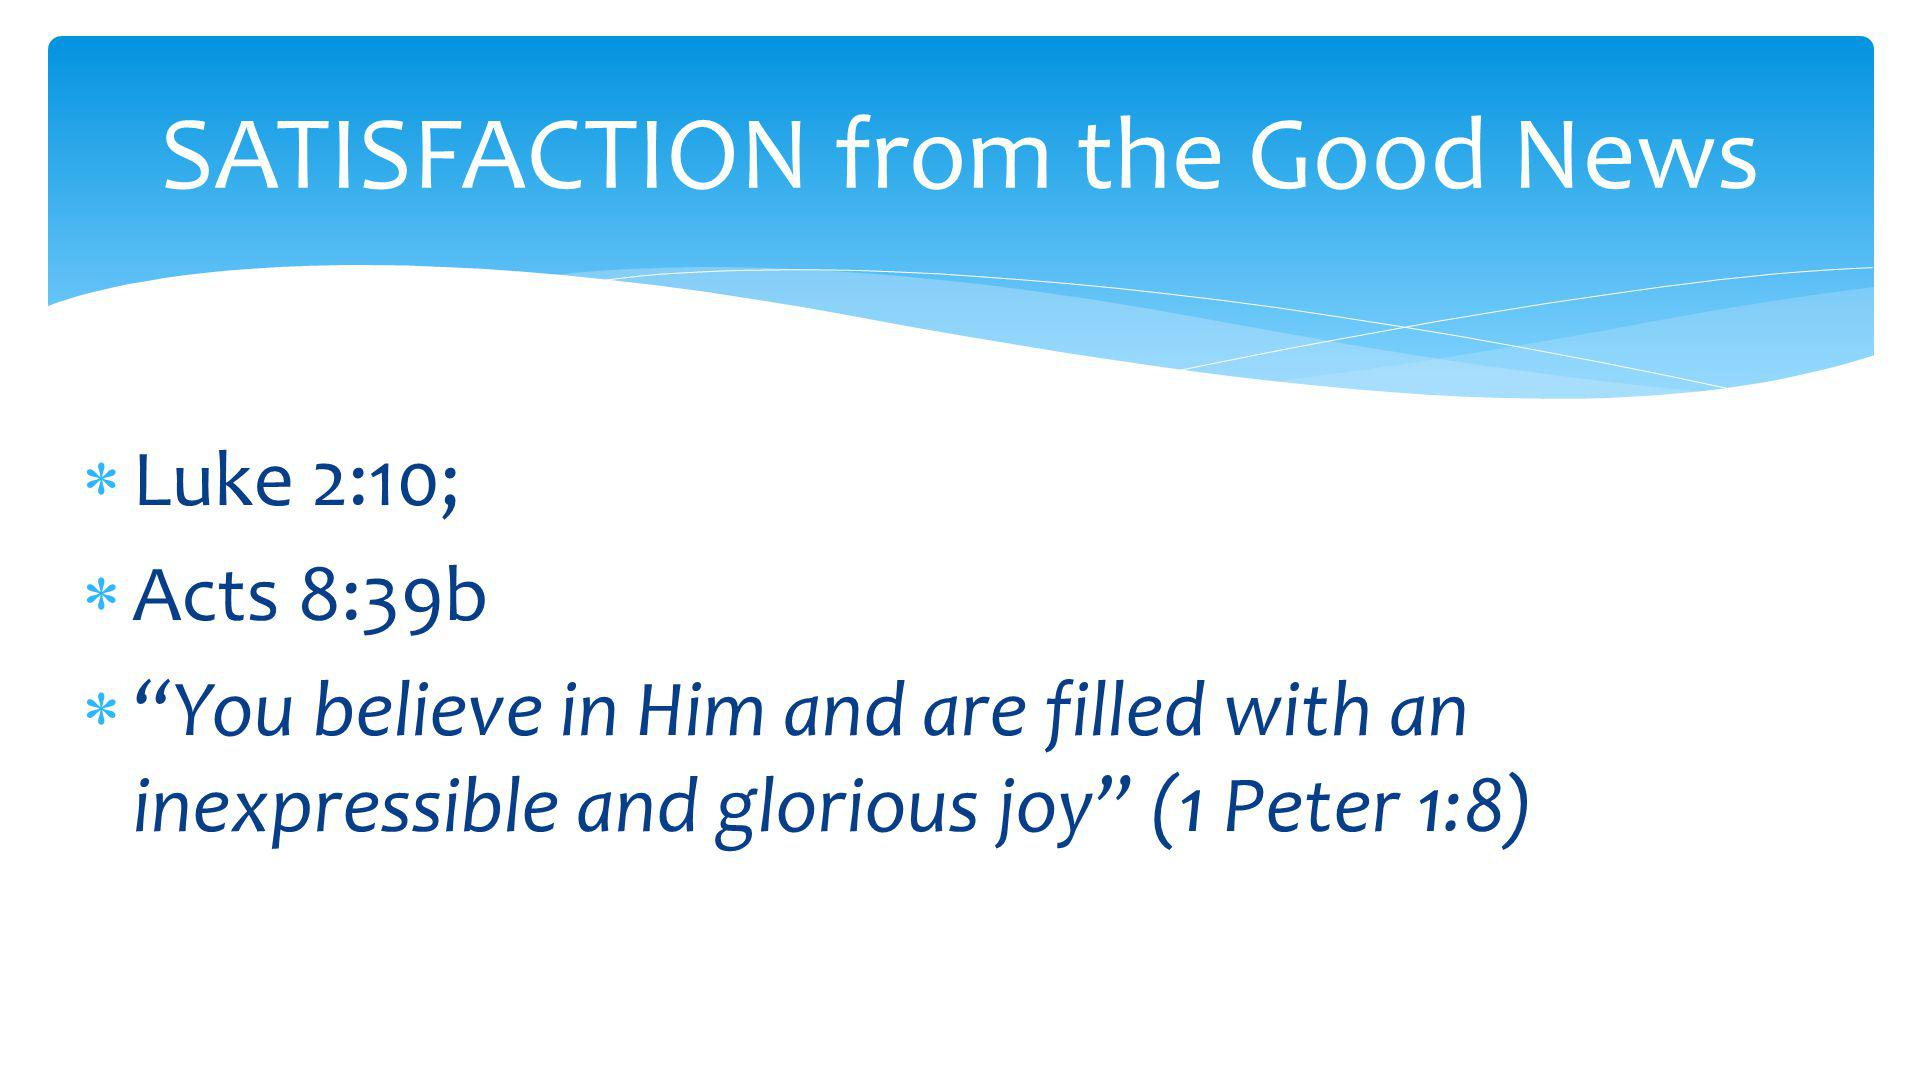  Luke 2:10;  Acts 8:39b  You believe in Him and are filled with an inexpressible and glorious joy (1 Peter 1:8) SATISFACTION from the Good News